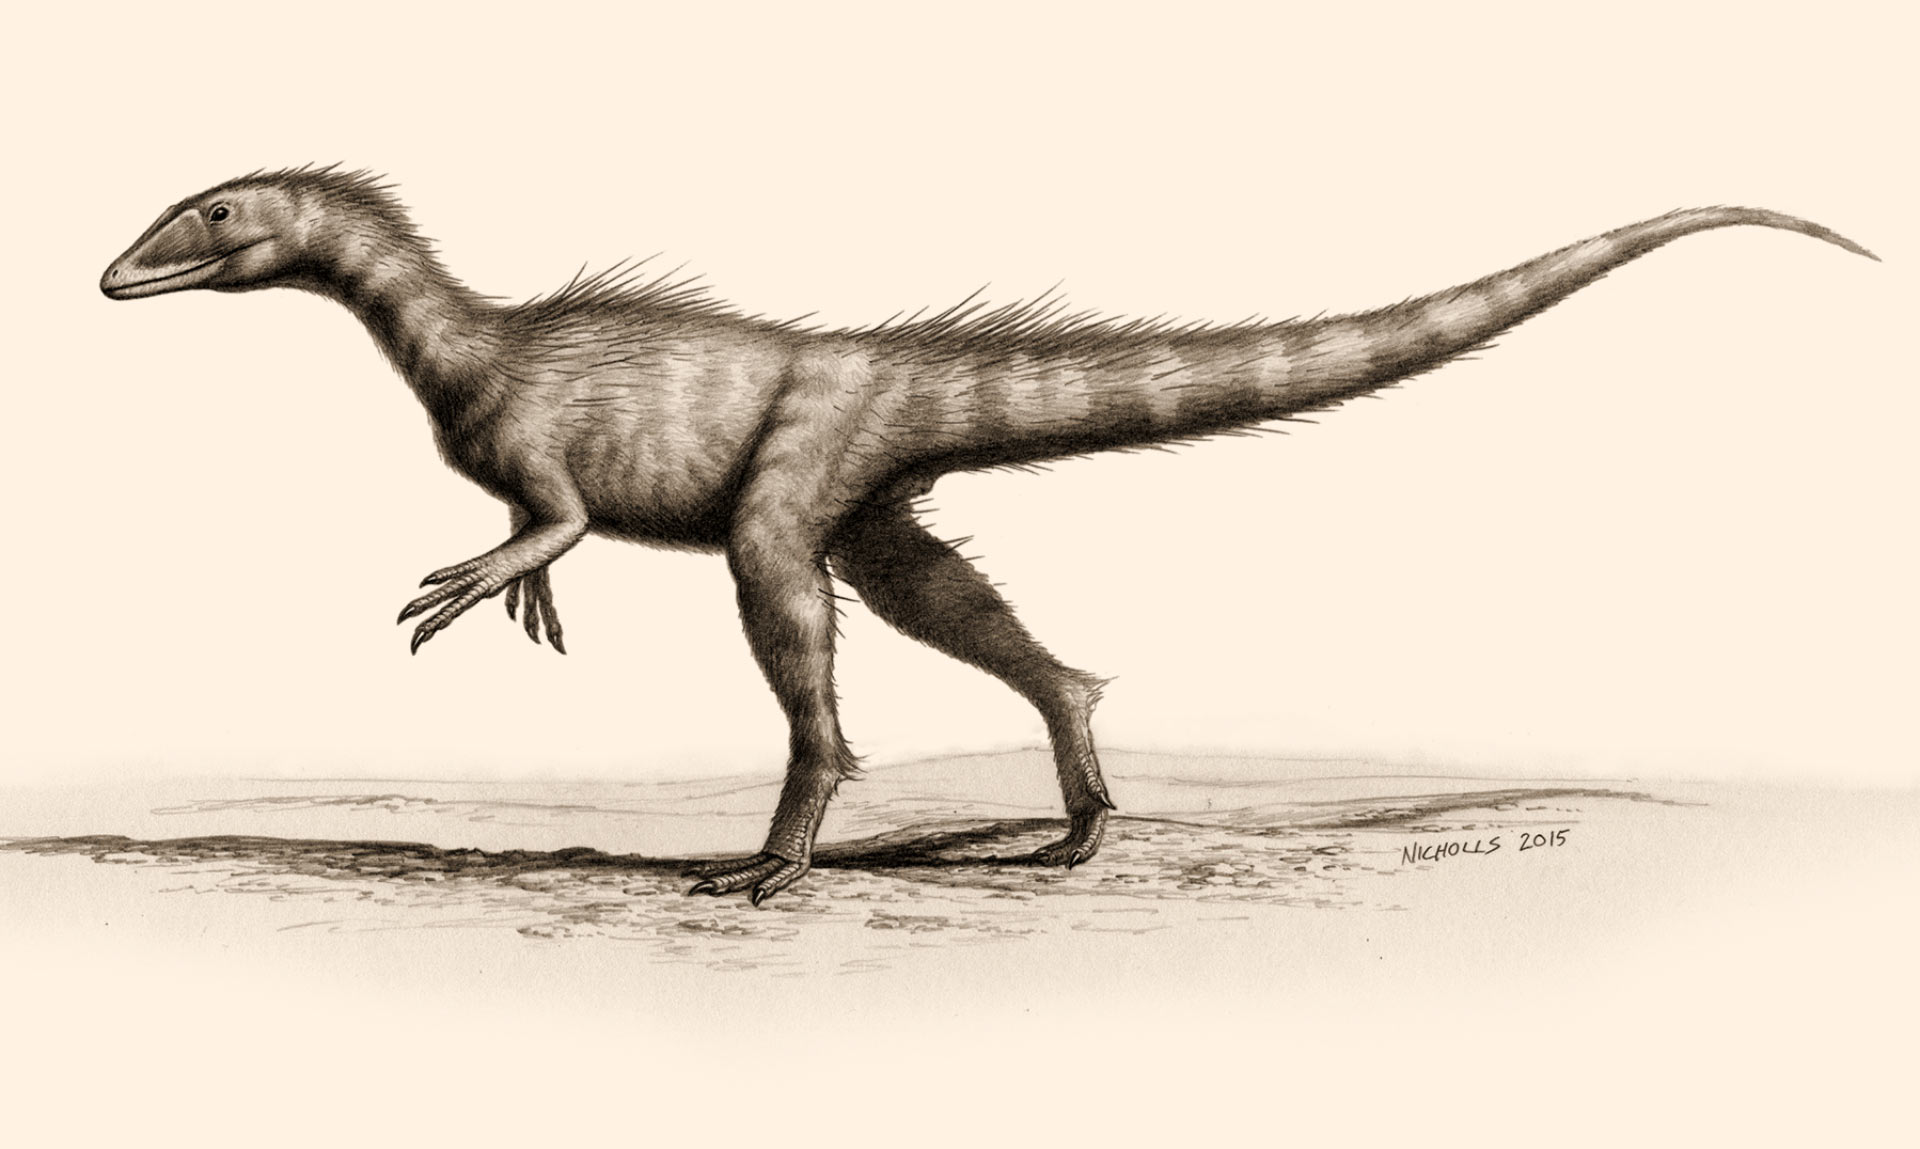 dracoraptor hanigani new species of dinosaur discovered in wales